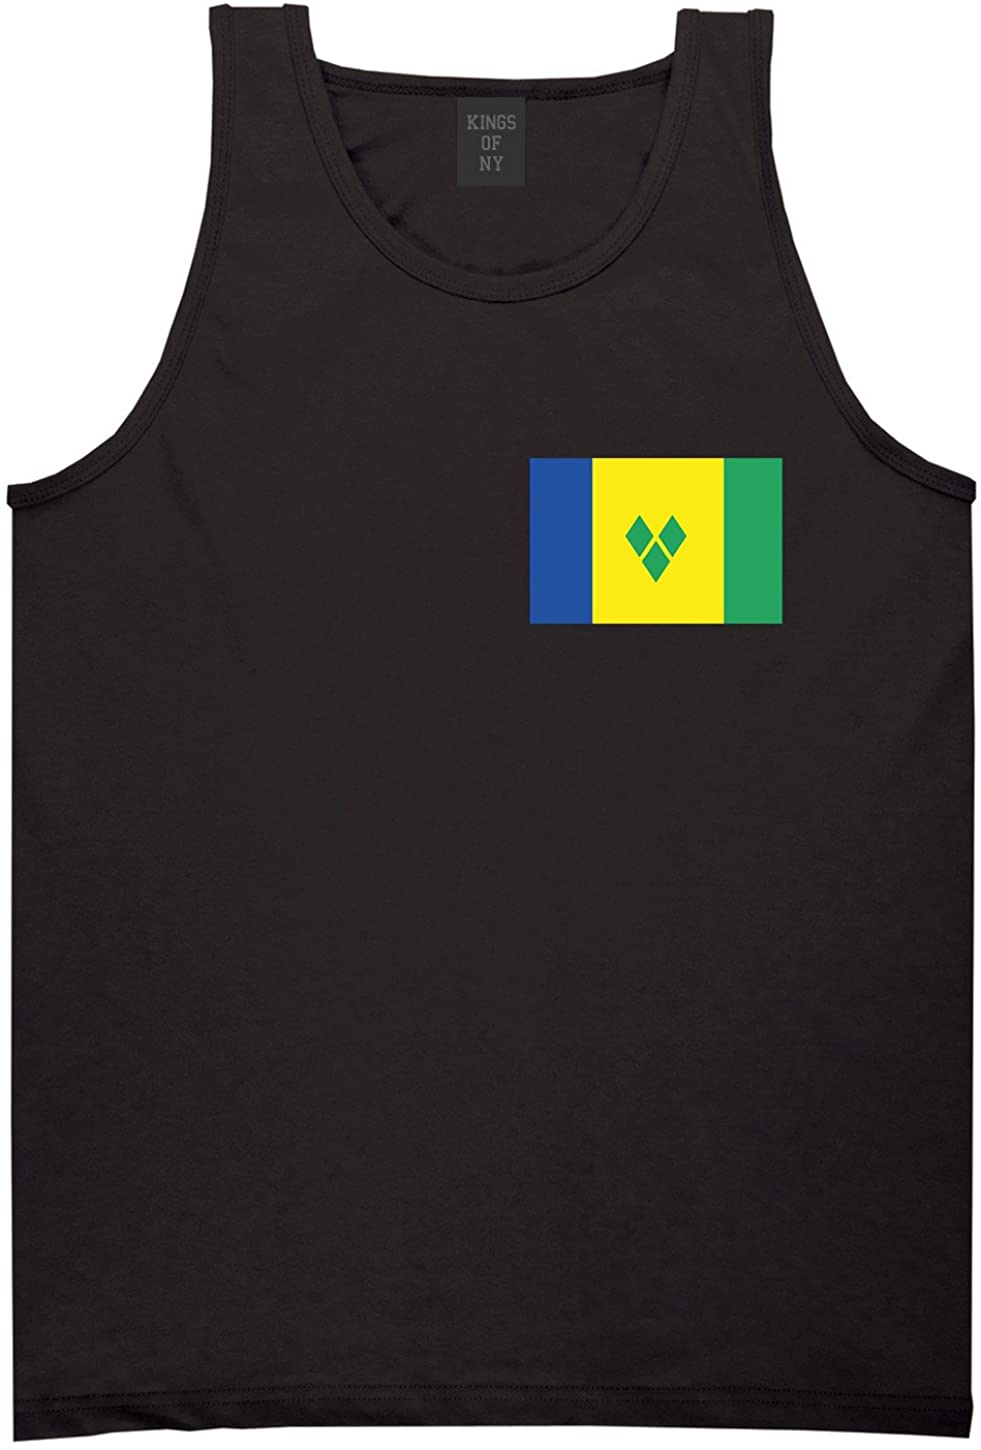 Saint Vicent and the Grenadines Flag Country Chest Tank Top Shirt